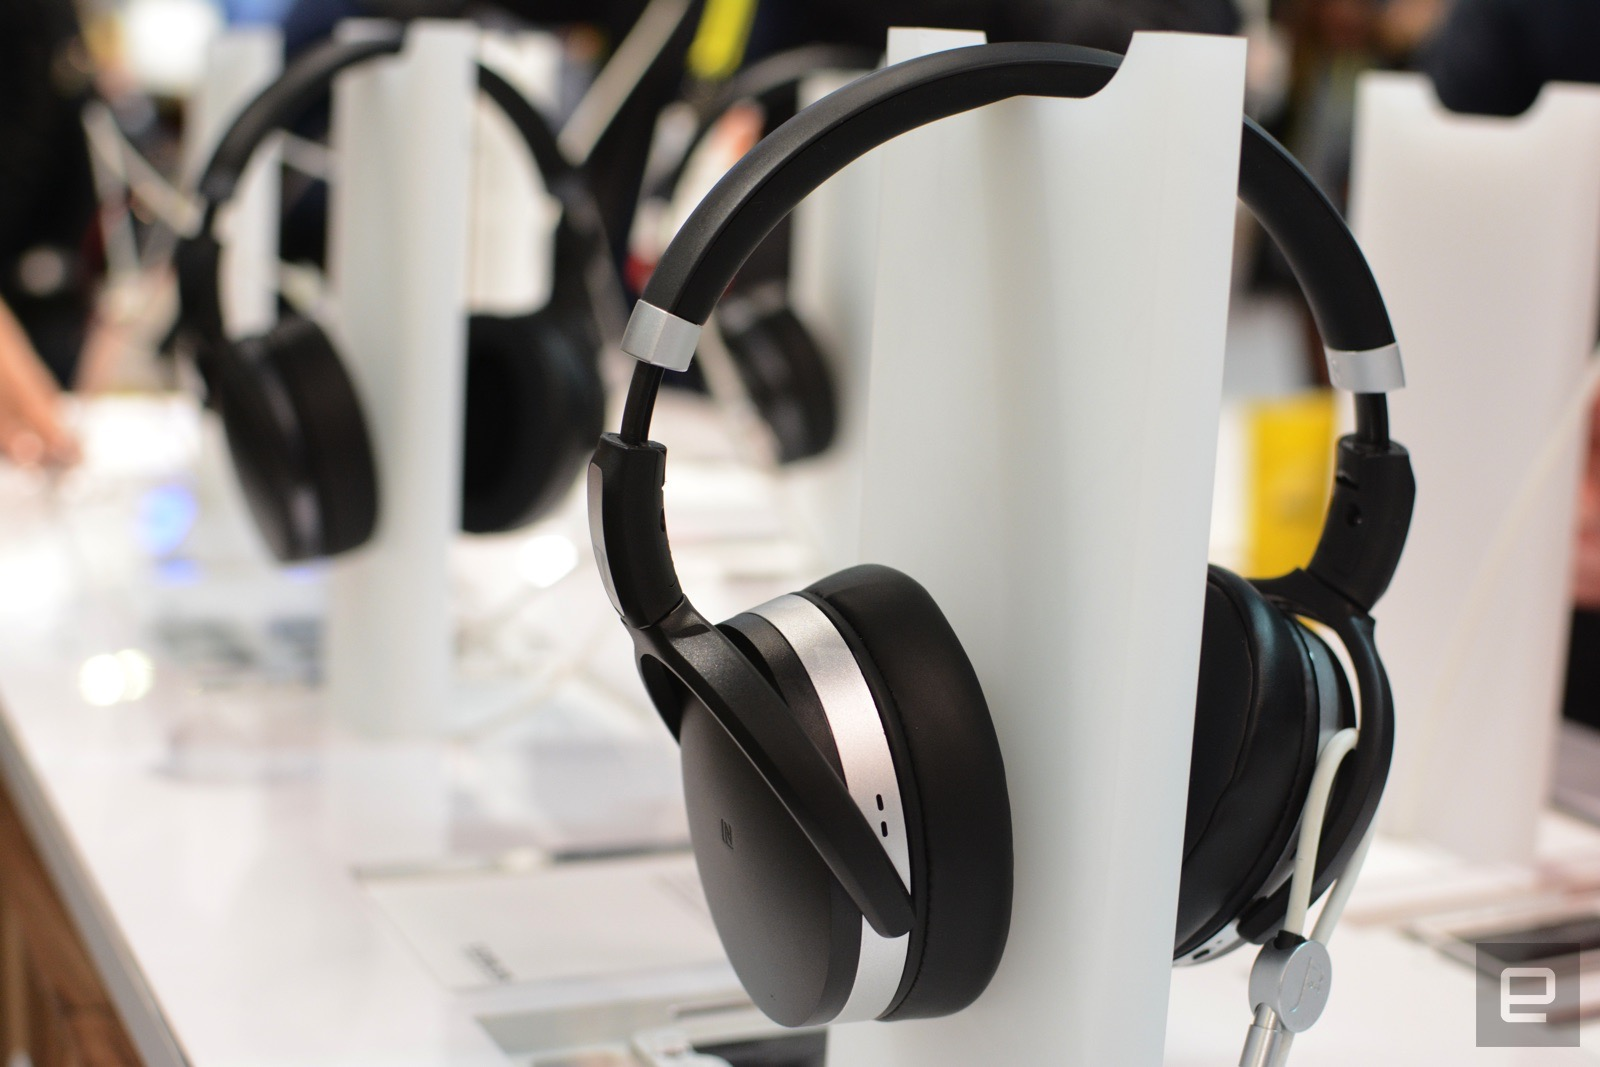 Sennheiser's wireless headphones